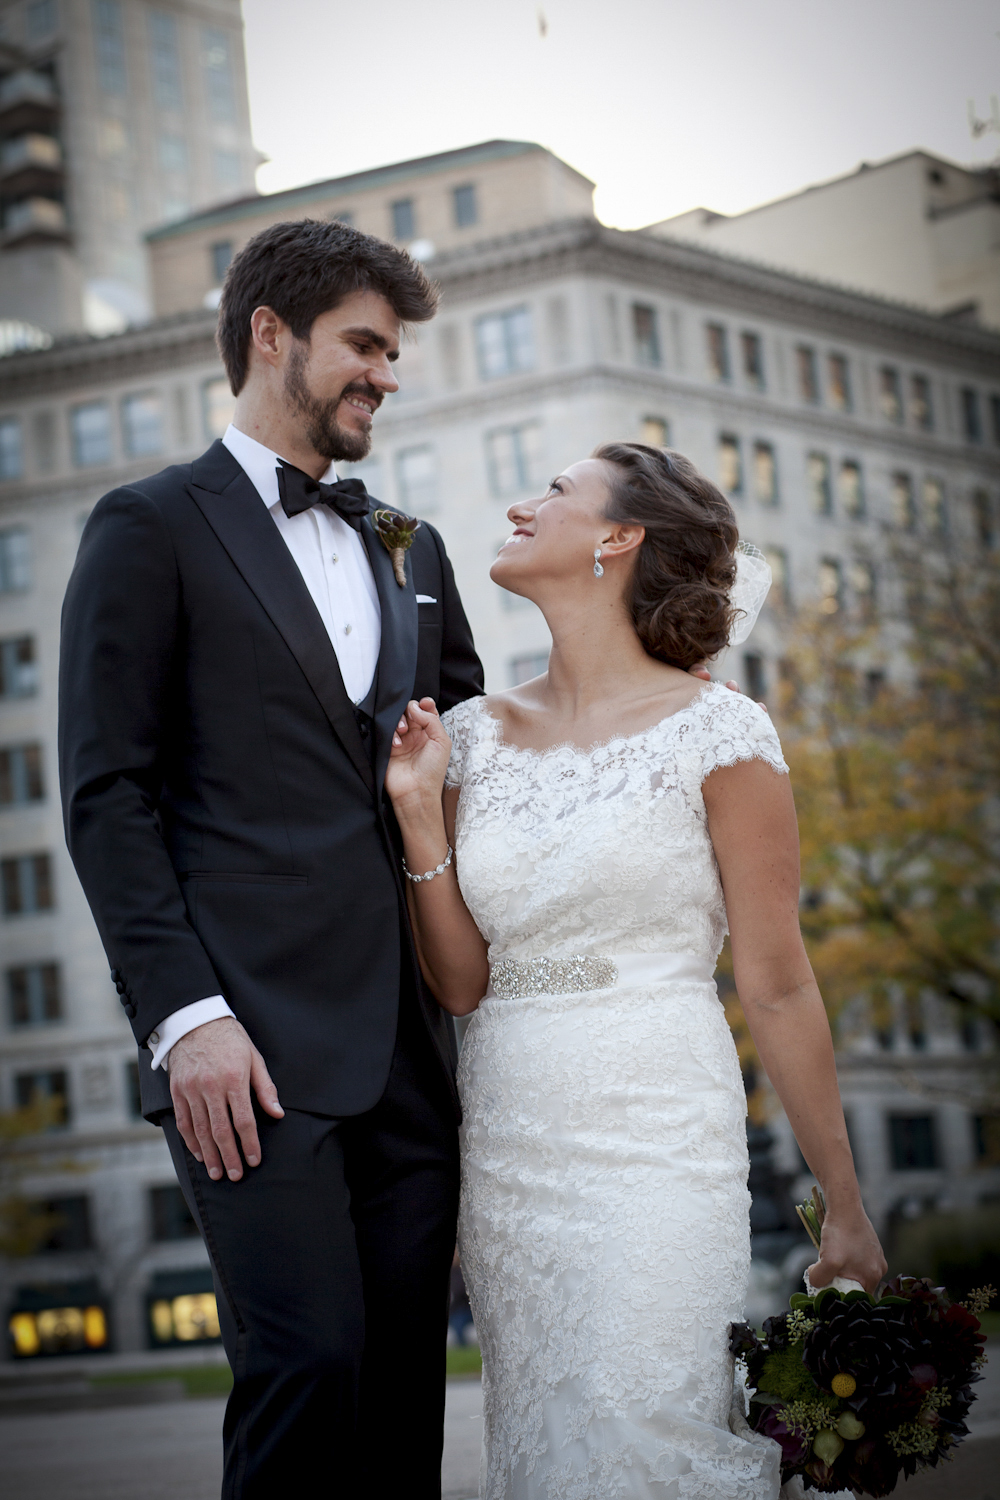 Indianapolis-Indiana-Monument-Circle-Wedding-Photographer-Crowes-Eye-Photography-Bride-Groom-Fun-formals-453.jpg